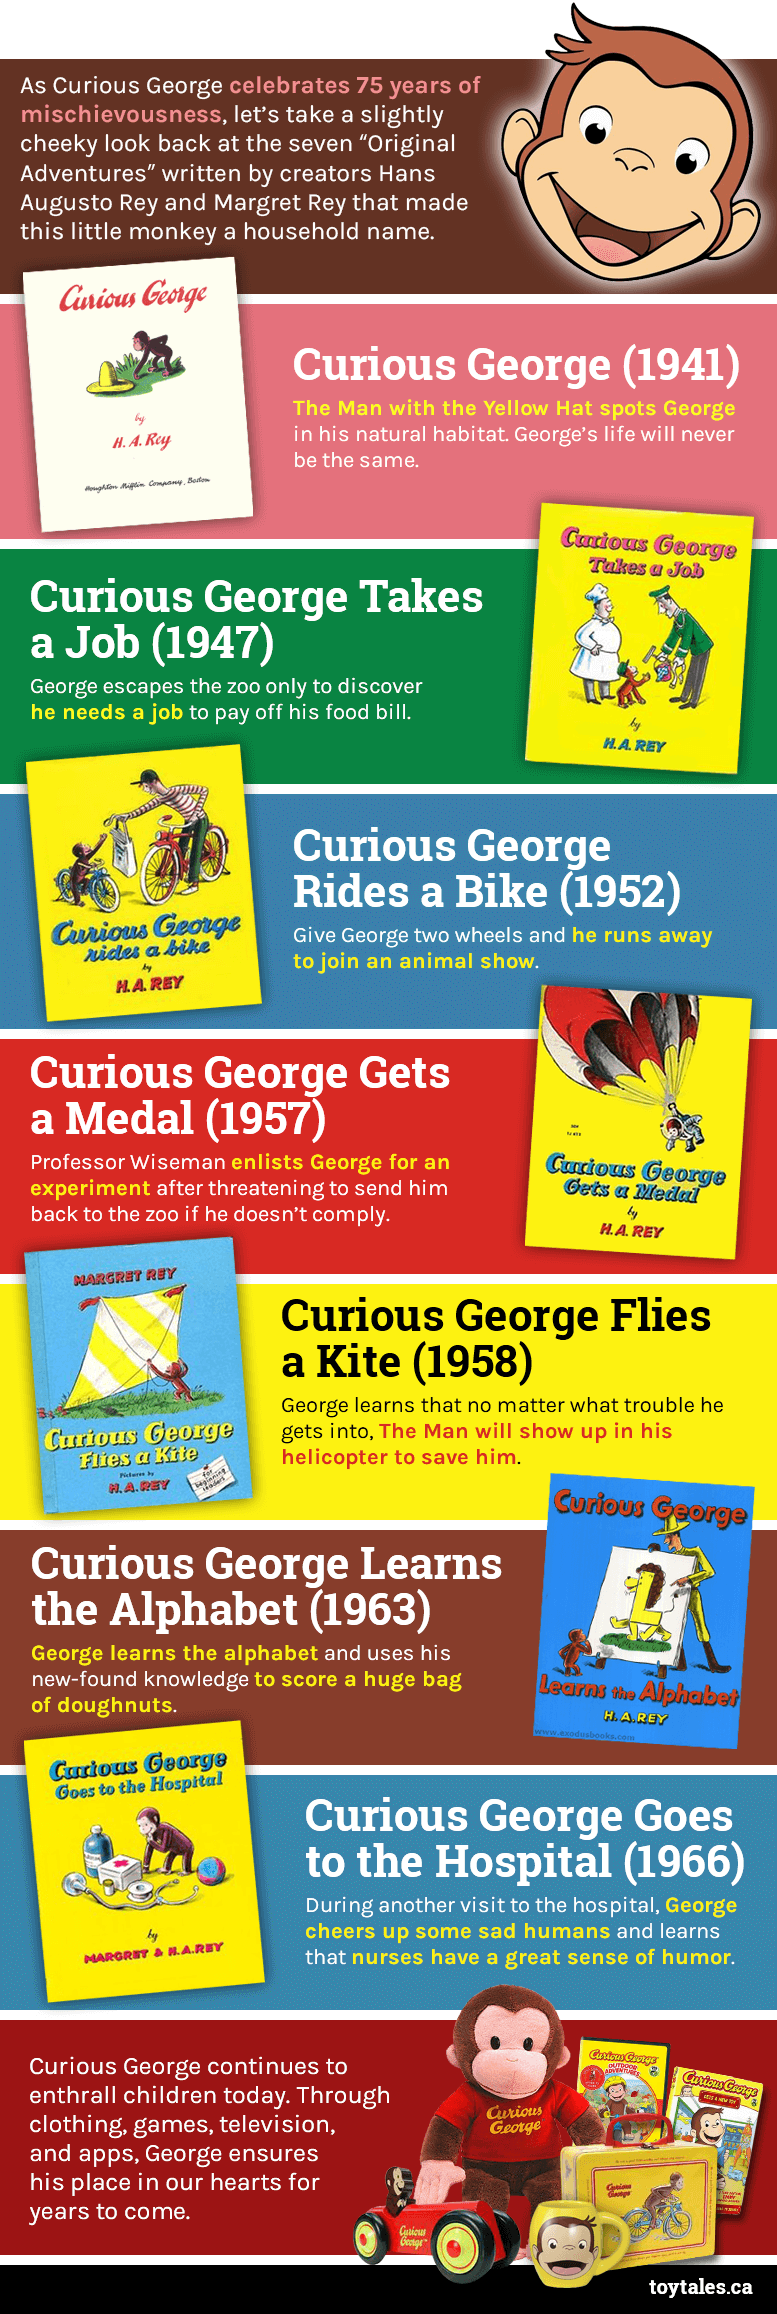 curious-george-infographic2